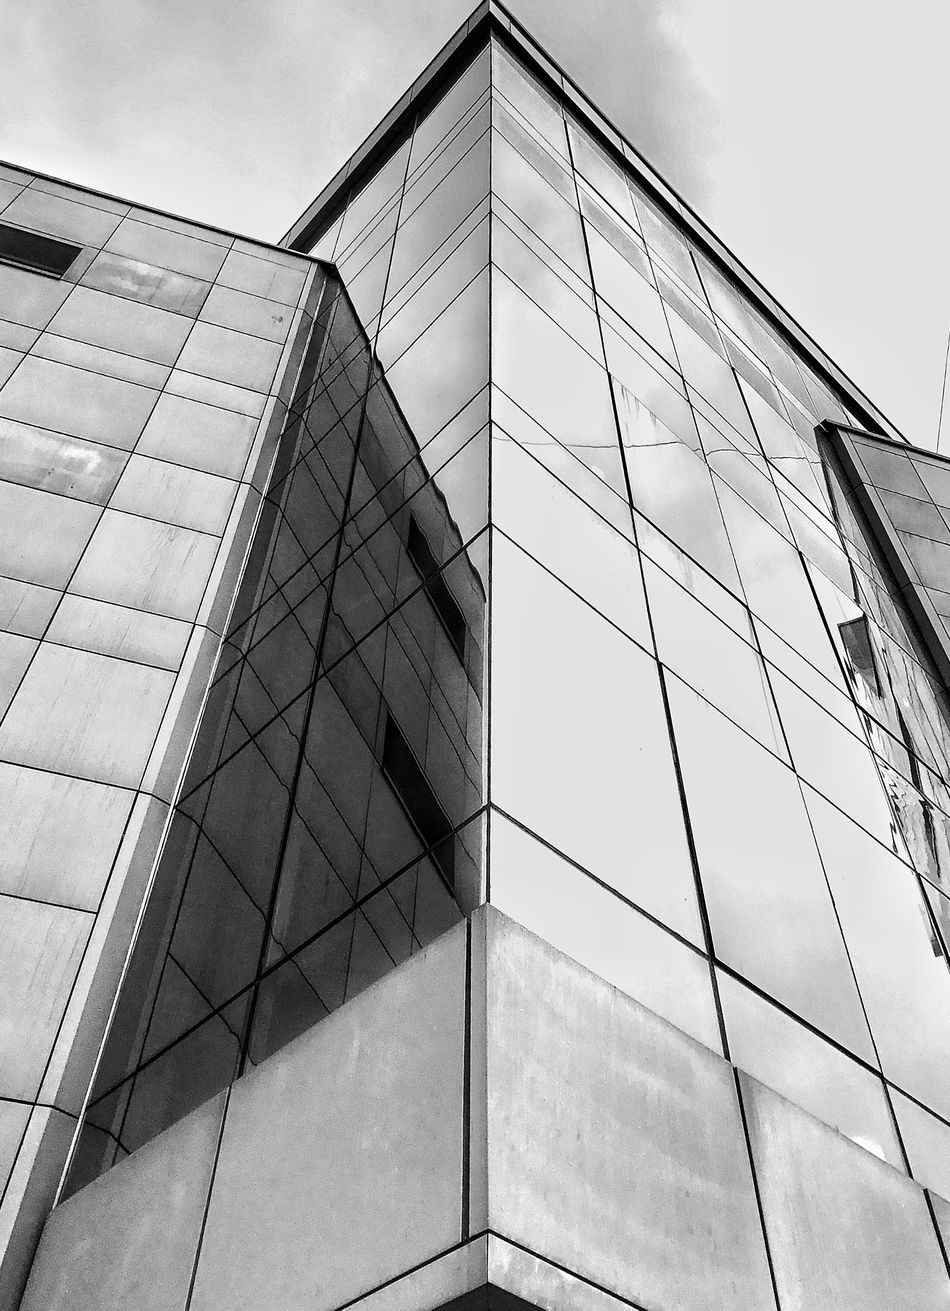 Low Angle View Architecture Building Exterior Sky Built Structure Reflection No People Modern Day Outdoors липецк Lipetsk Welcome To Black